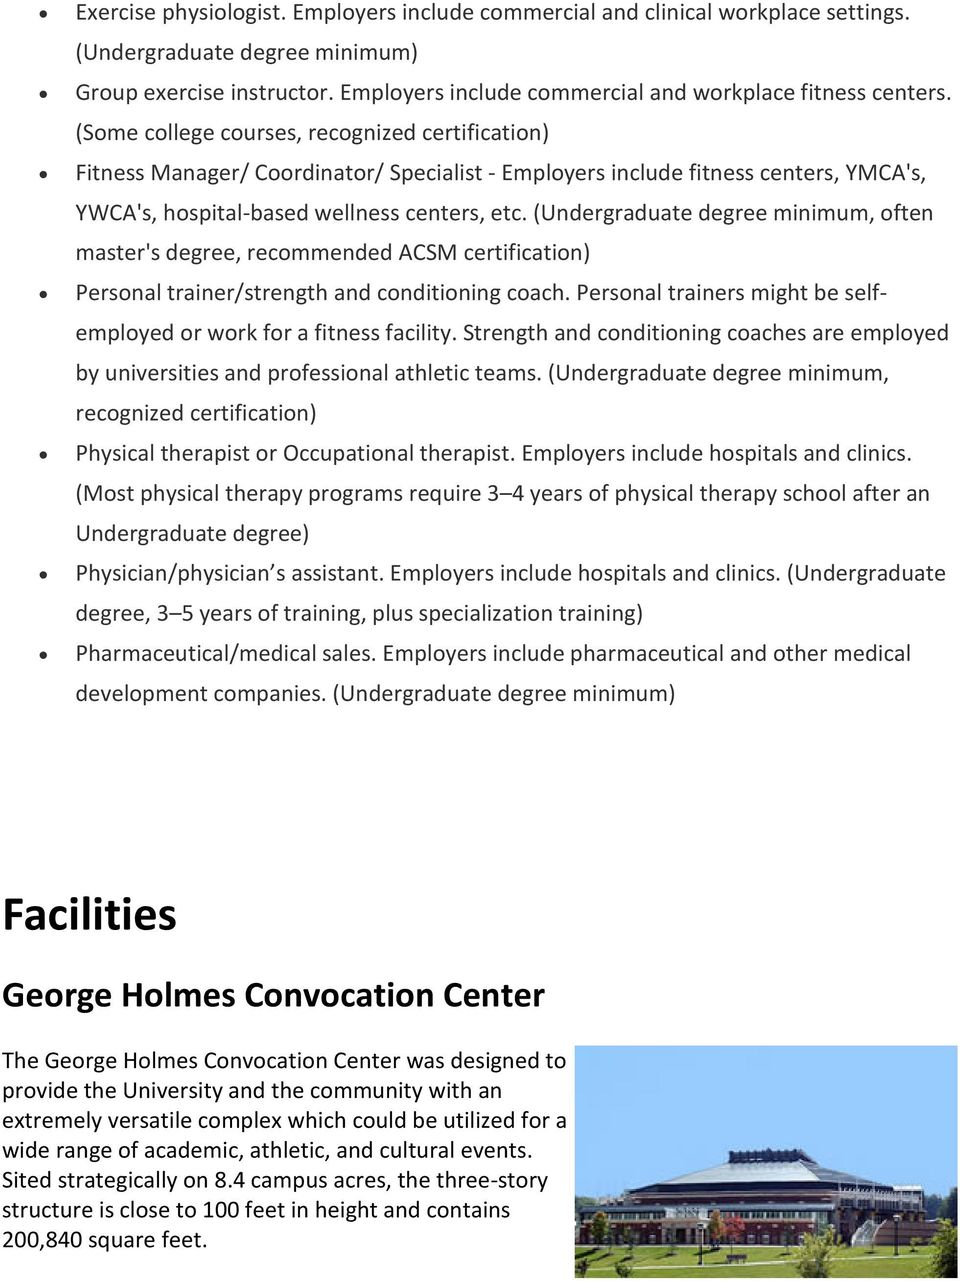 (Some college courses, recognized certification) Fitness Manager/ Coordinator/ Specialist - Employers include fitness centers, YMCA's, YWCA's, hospital-based wellness centers, etc.